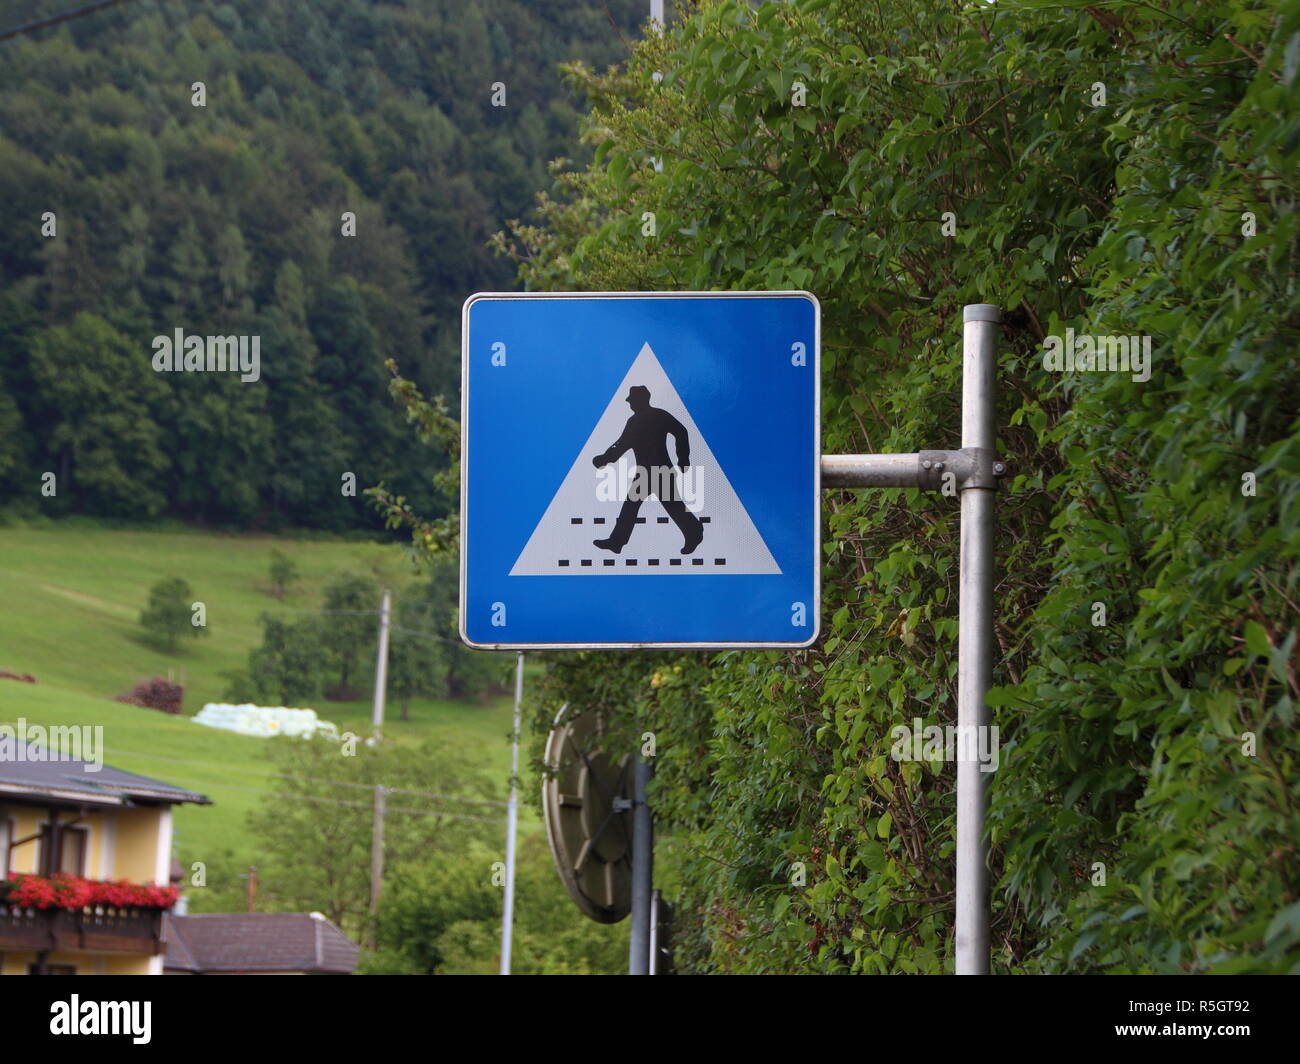 Pedestrian Sign of Man with Hat at Crossover - Stock Image